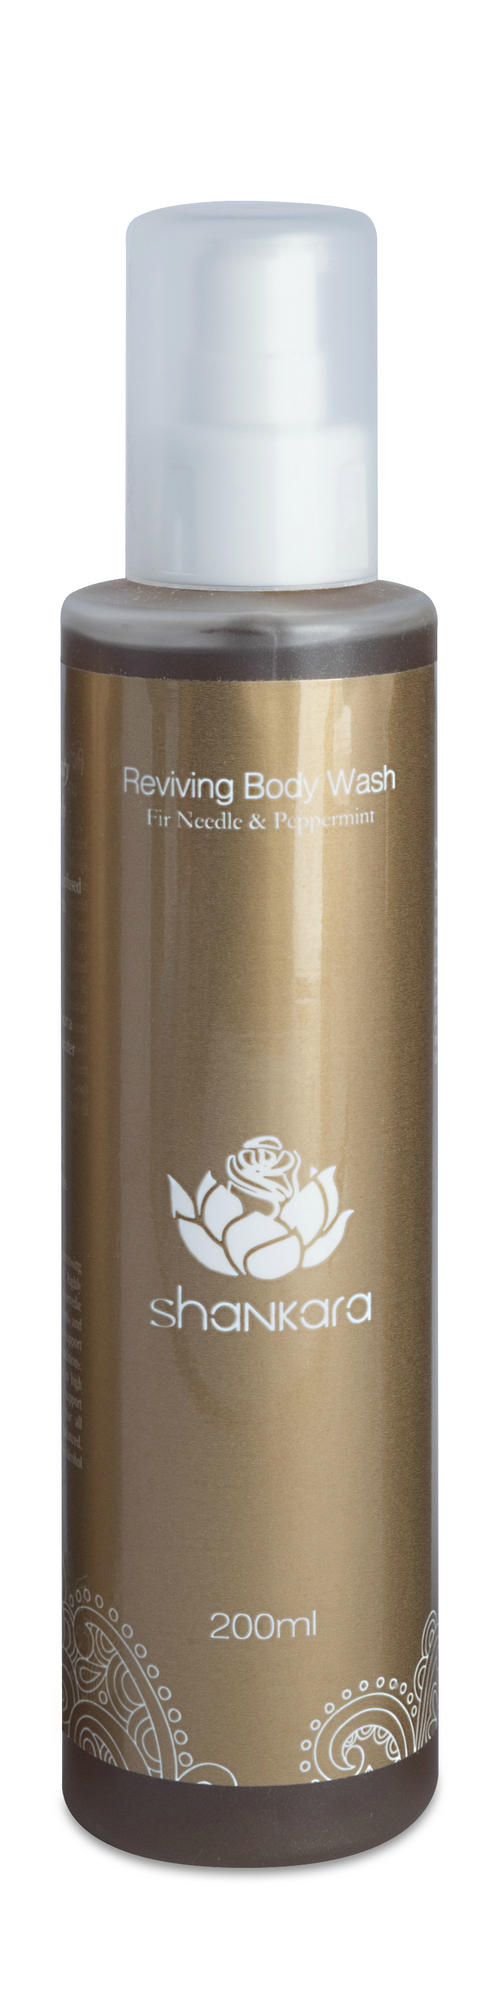 Reviving Body Wash - Kapha (naaldboom, pepermunt, menthol)